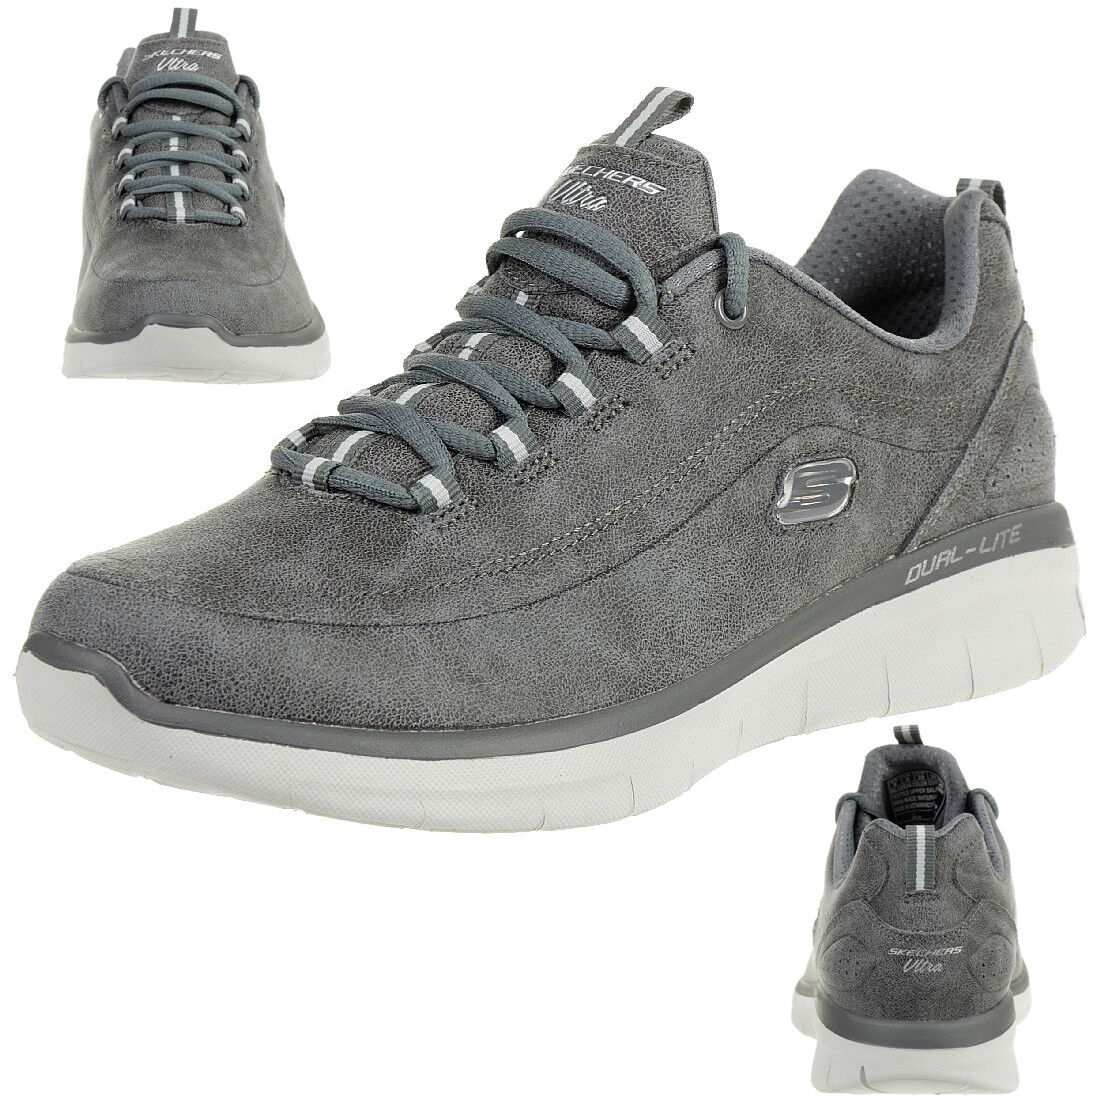 Skechers Synergie 2.0 Comfy Up Chaussures Fitness Dame Mousse à Mémoire Char